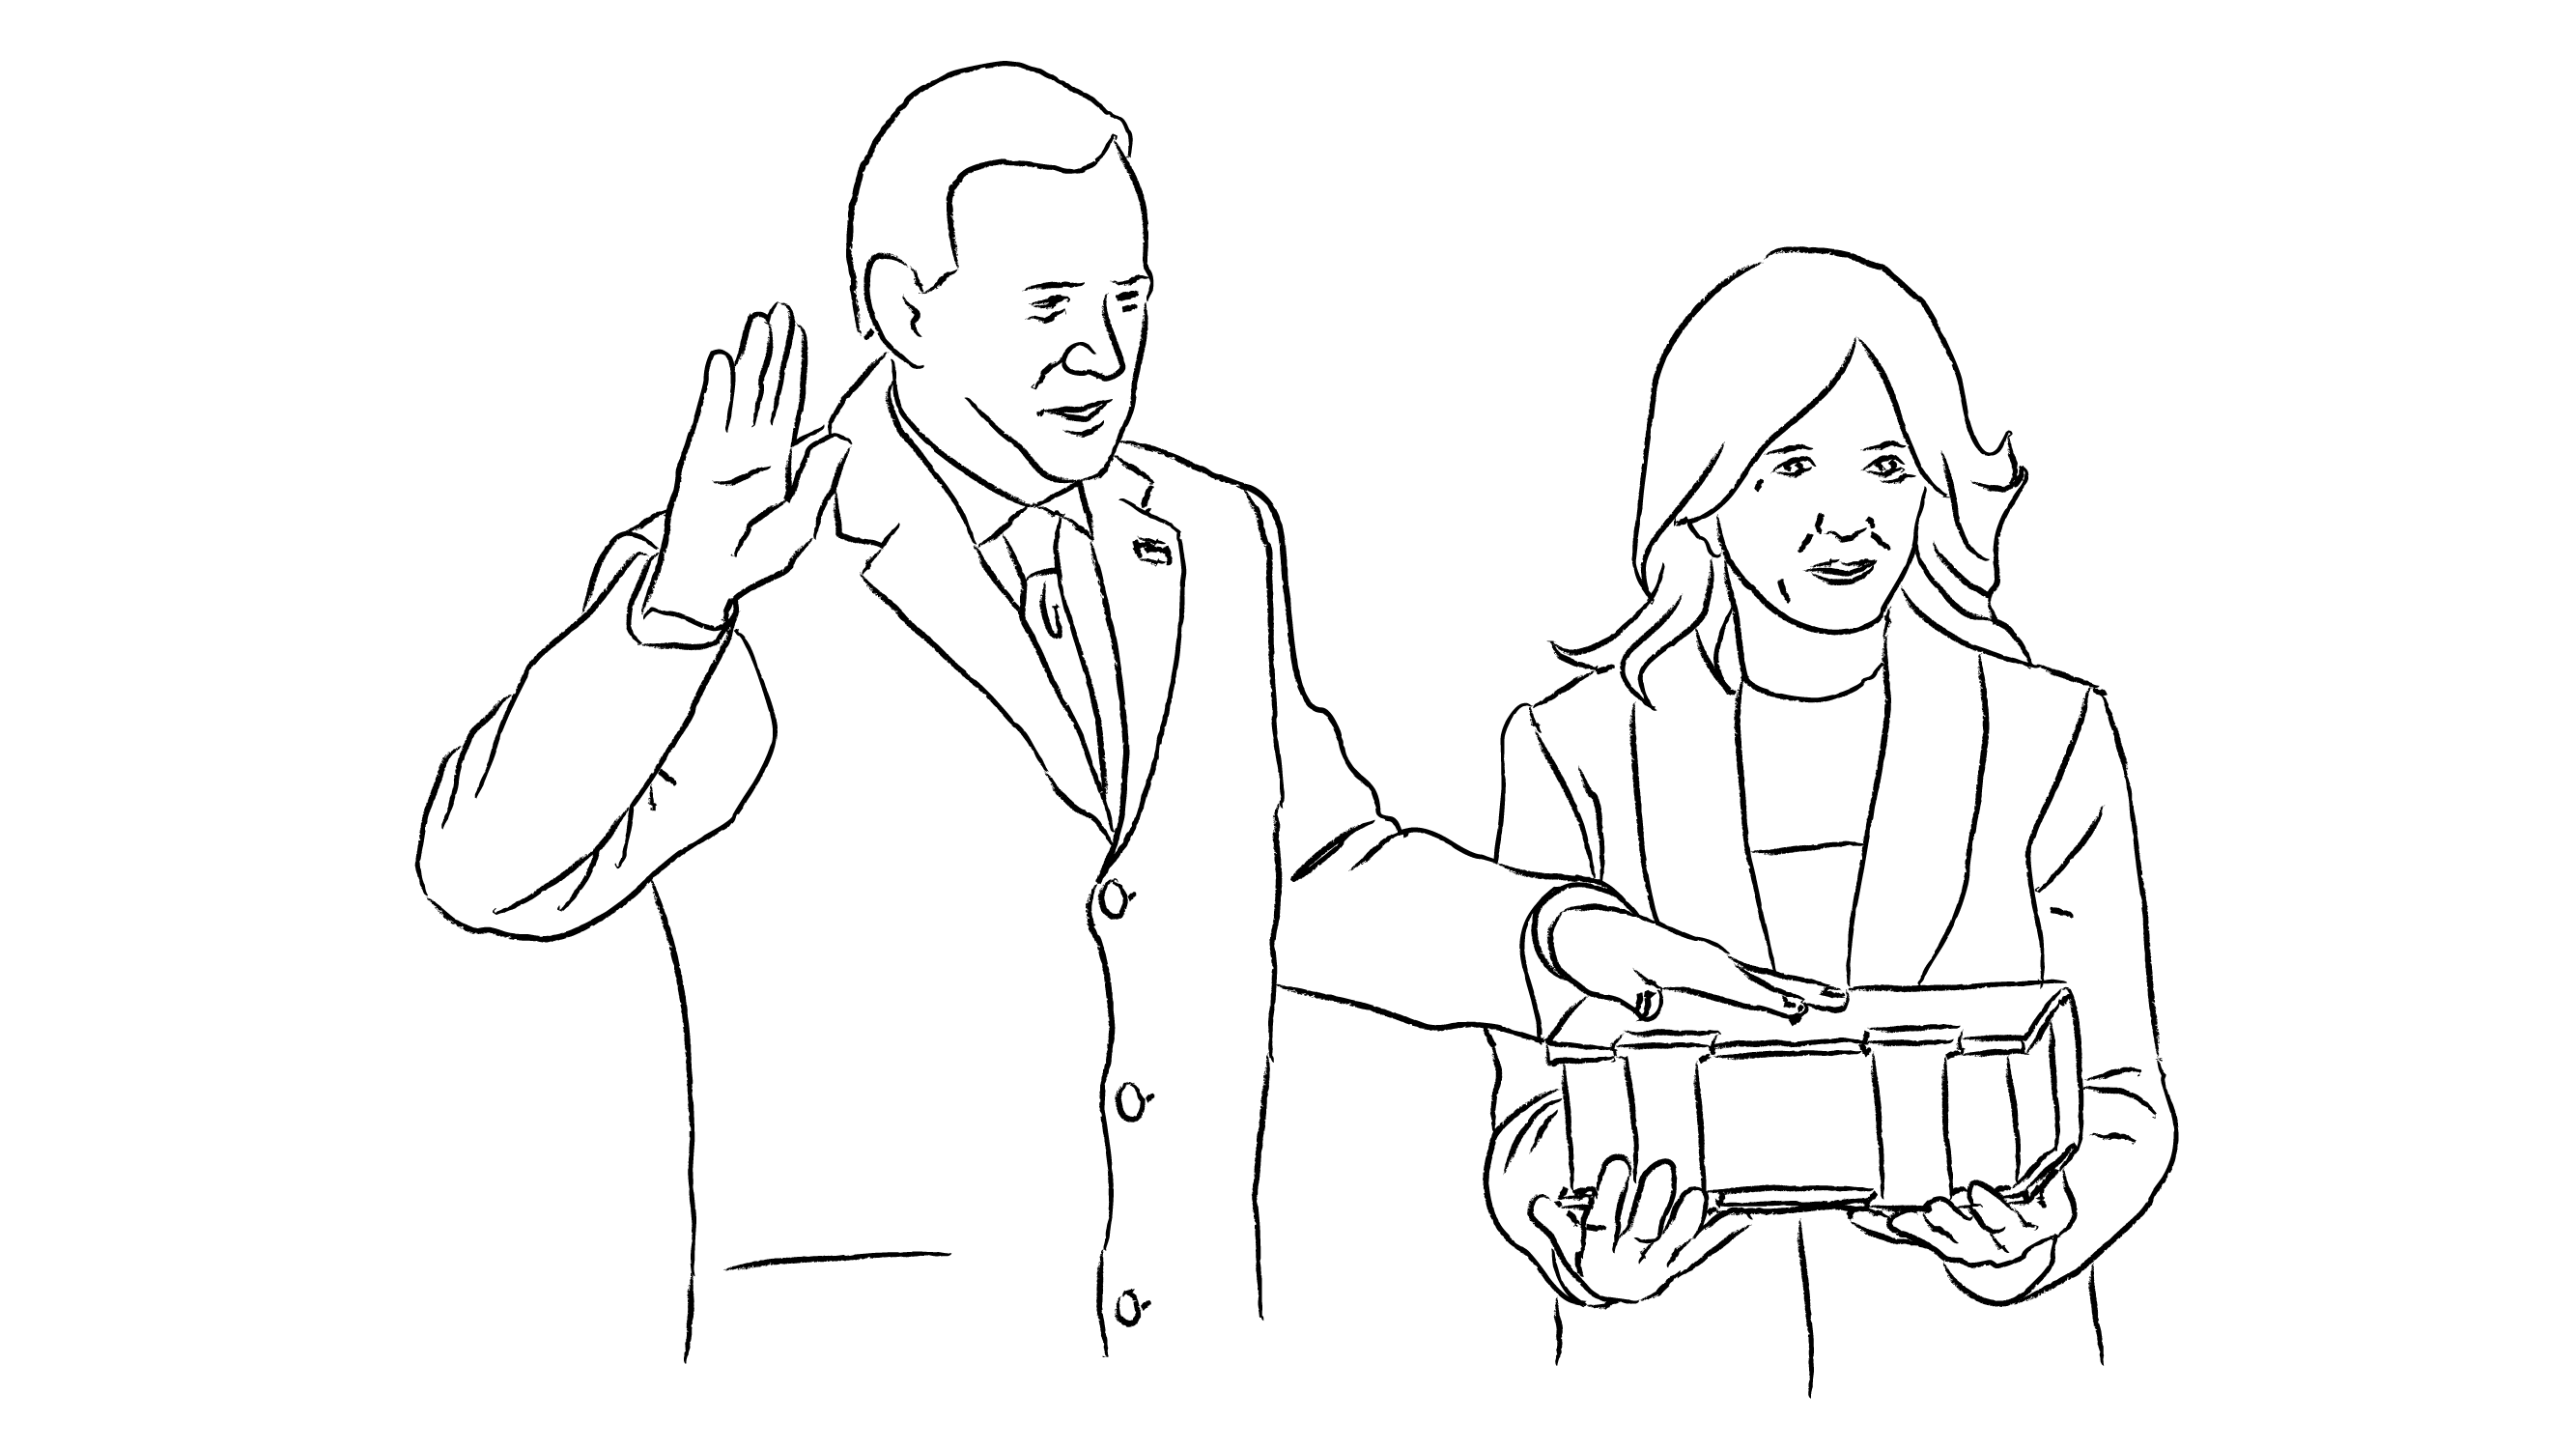 An illustration of President Joseph R. Biden taking his oath on Inauguration day.